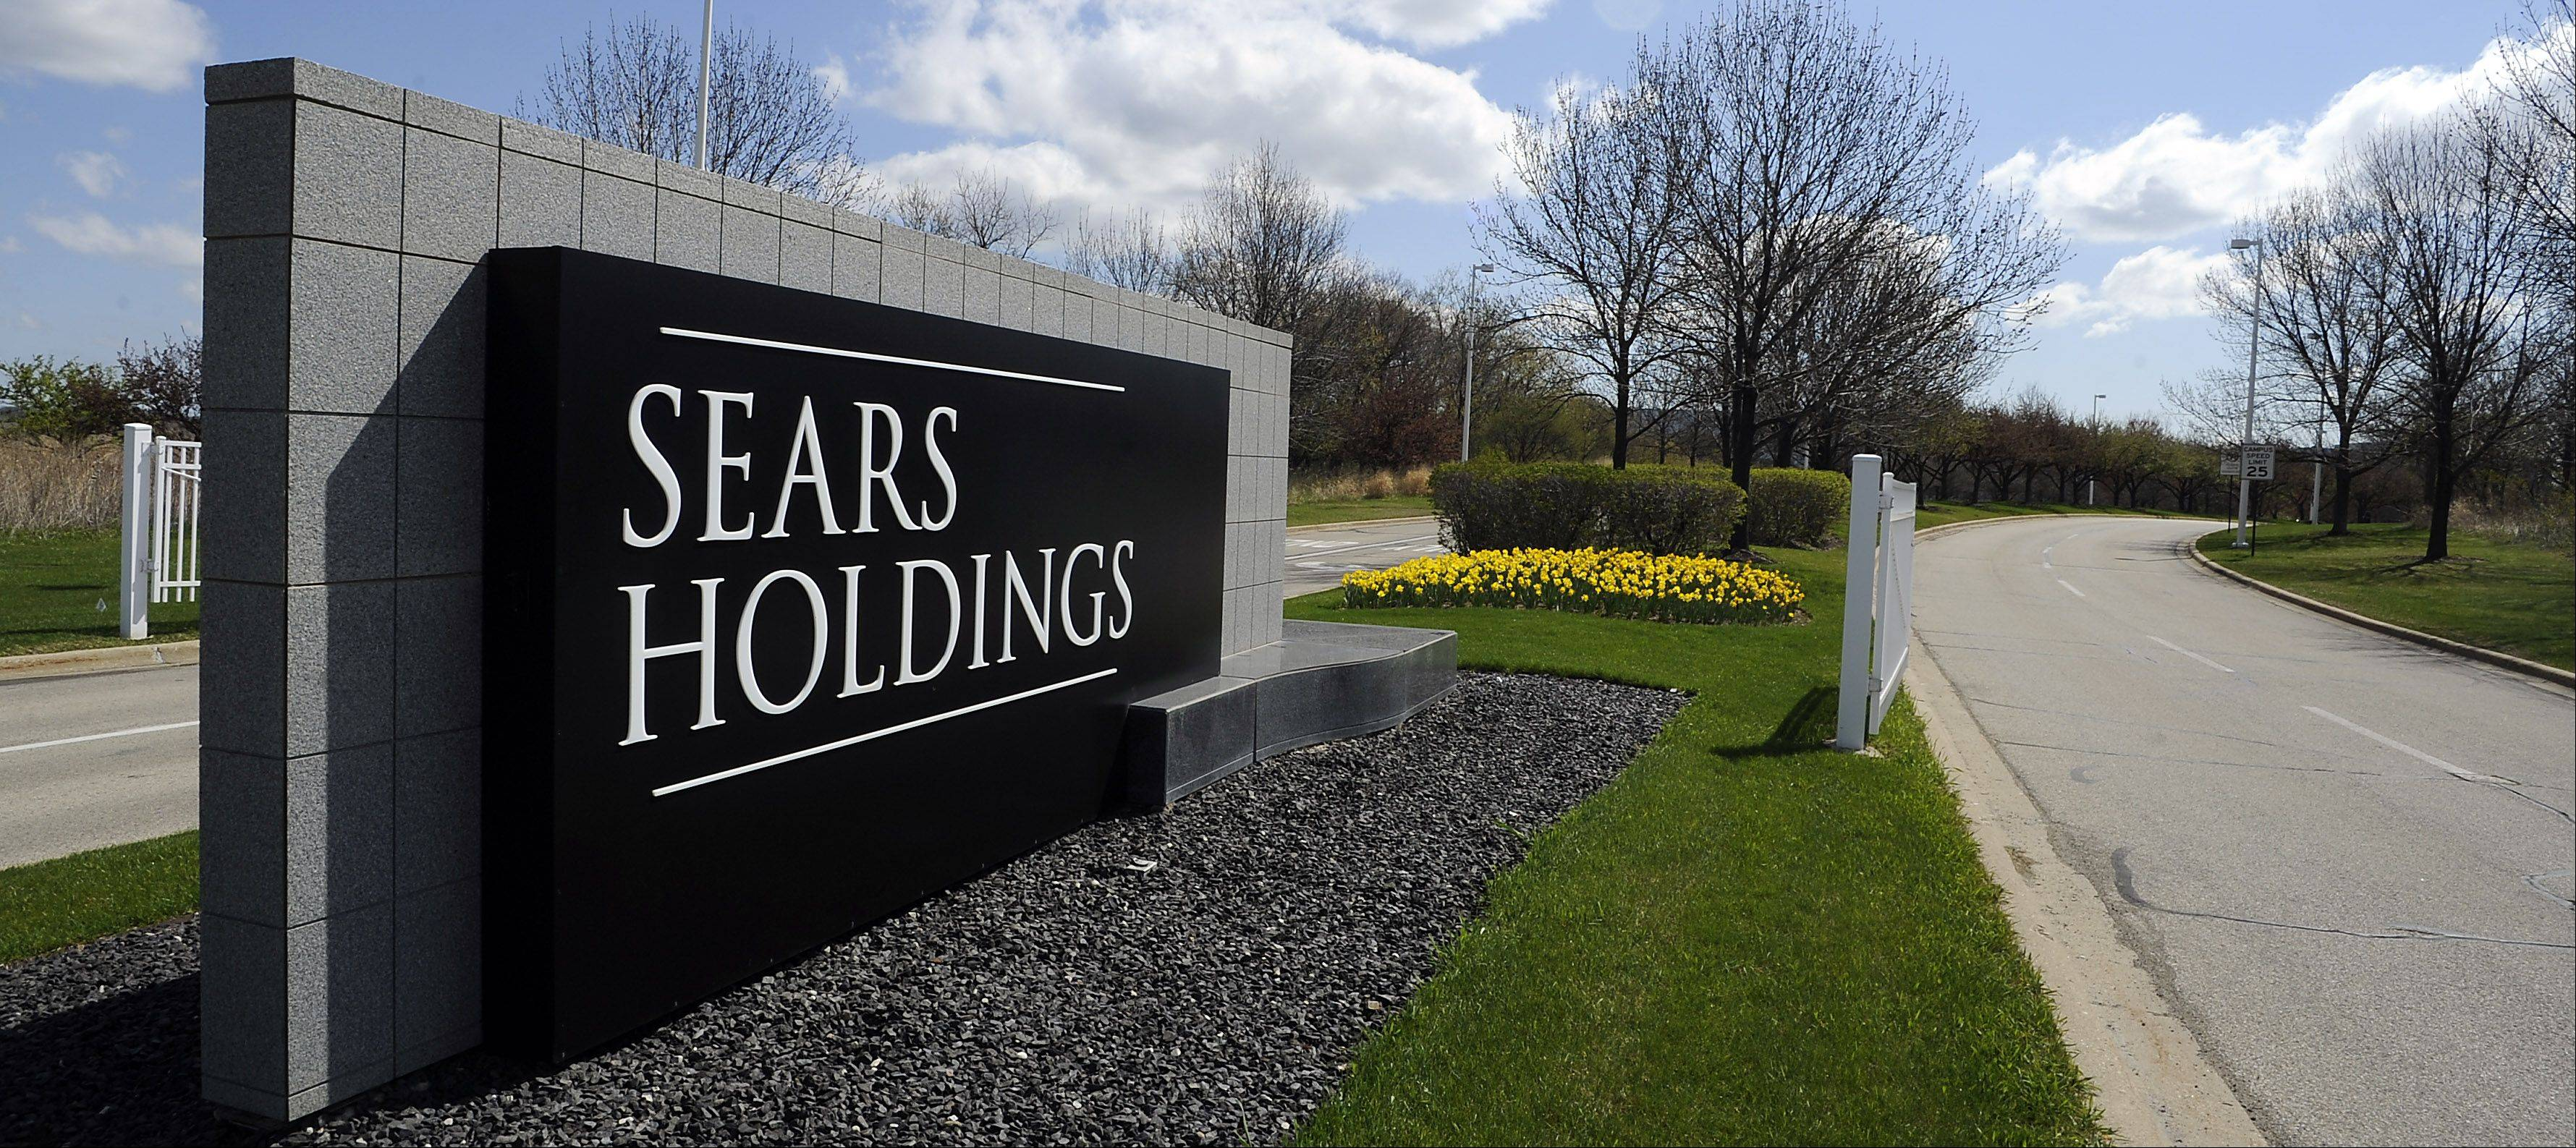 Hoffman Estates-based Sears Holdings